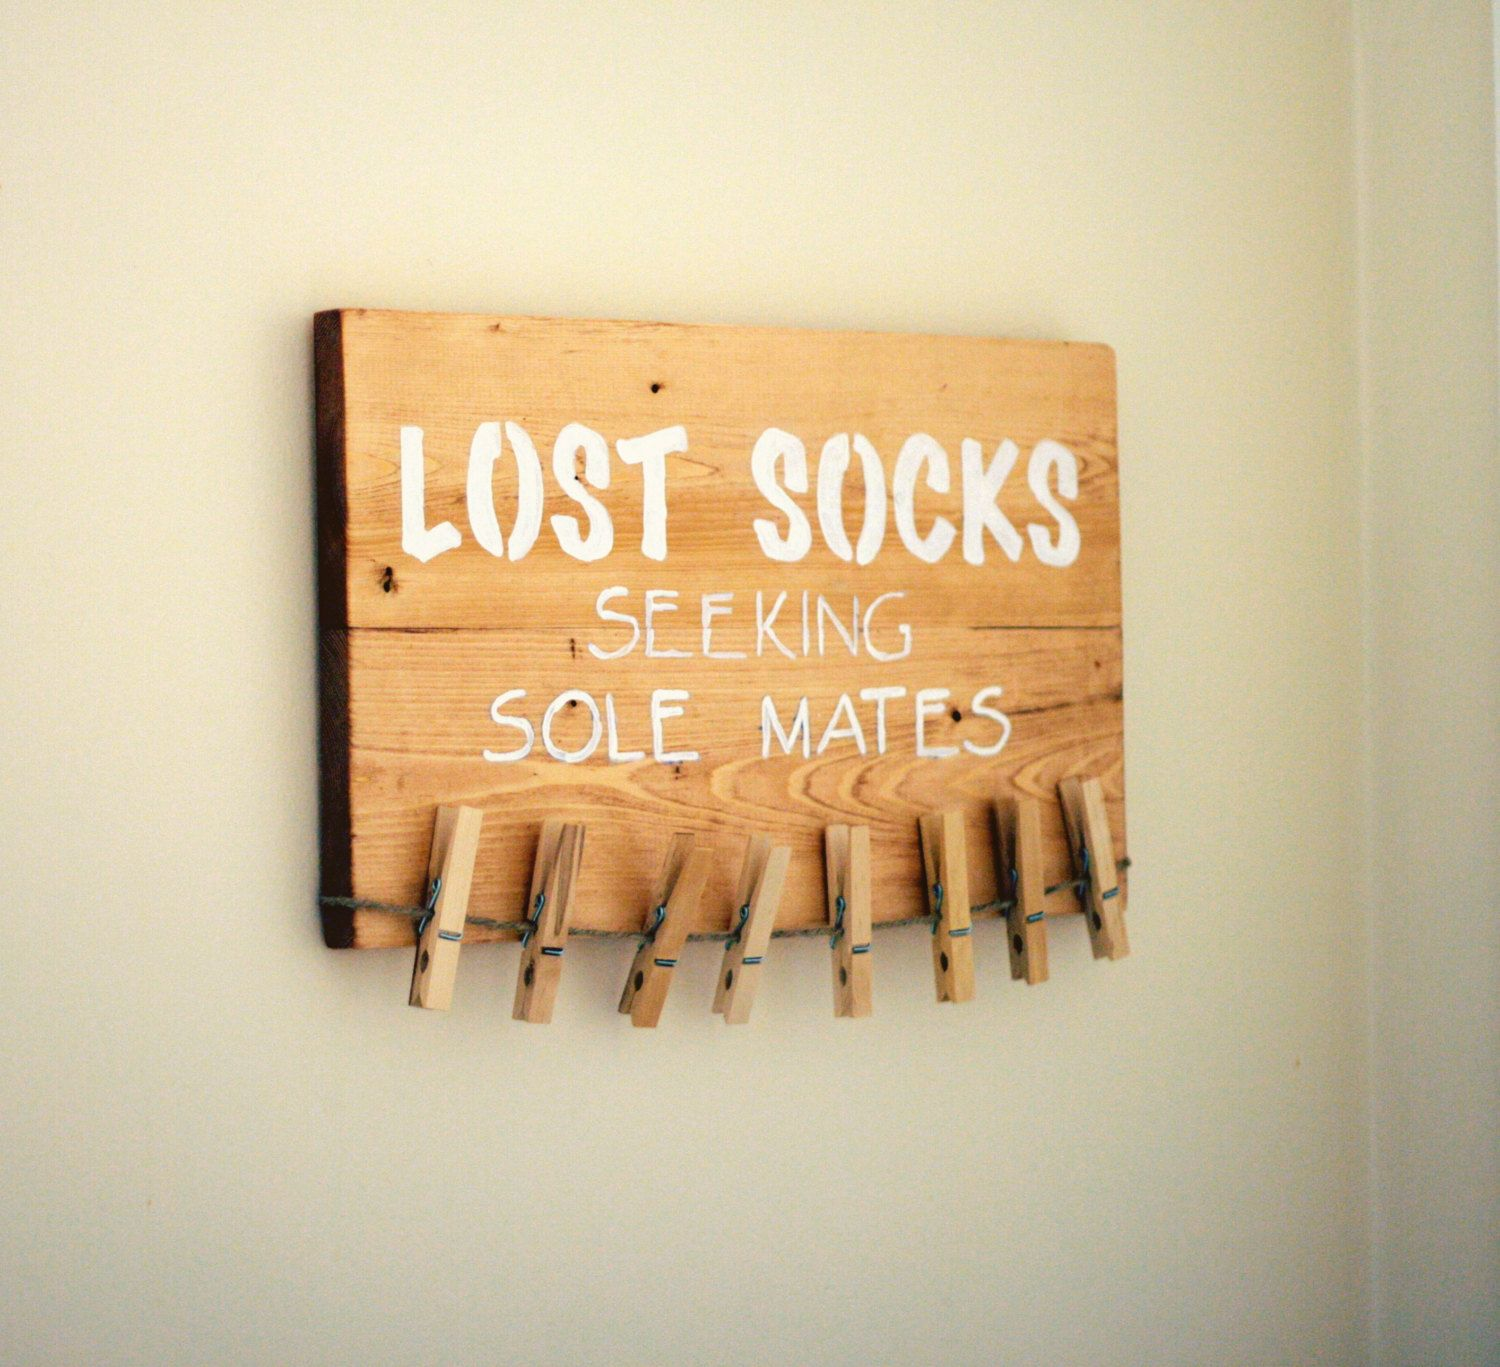 Laundry Room Sock Sign Lost Socks Sign Lost Socks Seeking Sole Mate Sign Laundry Room